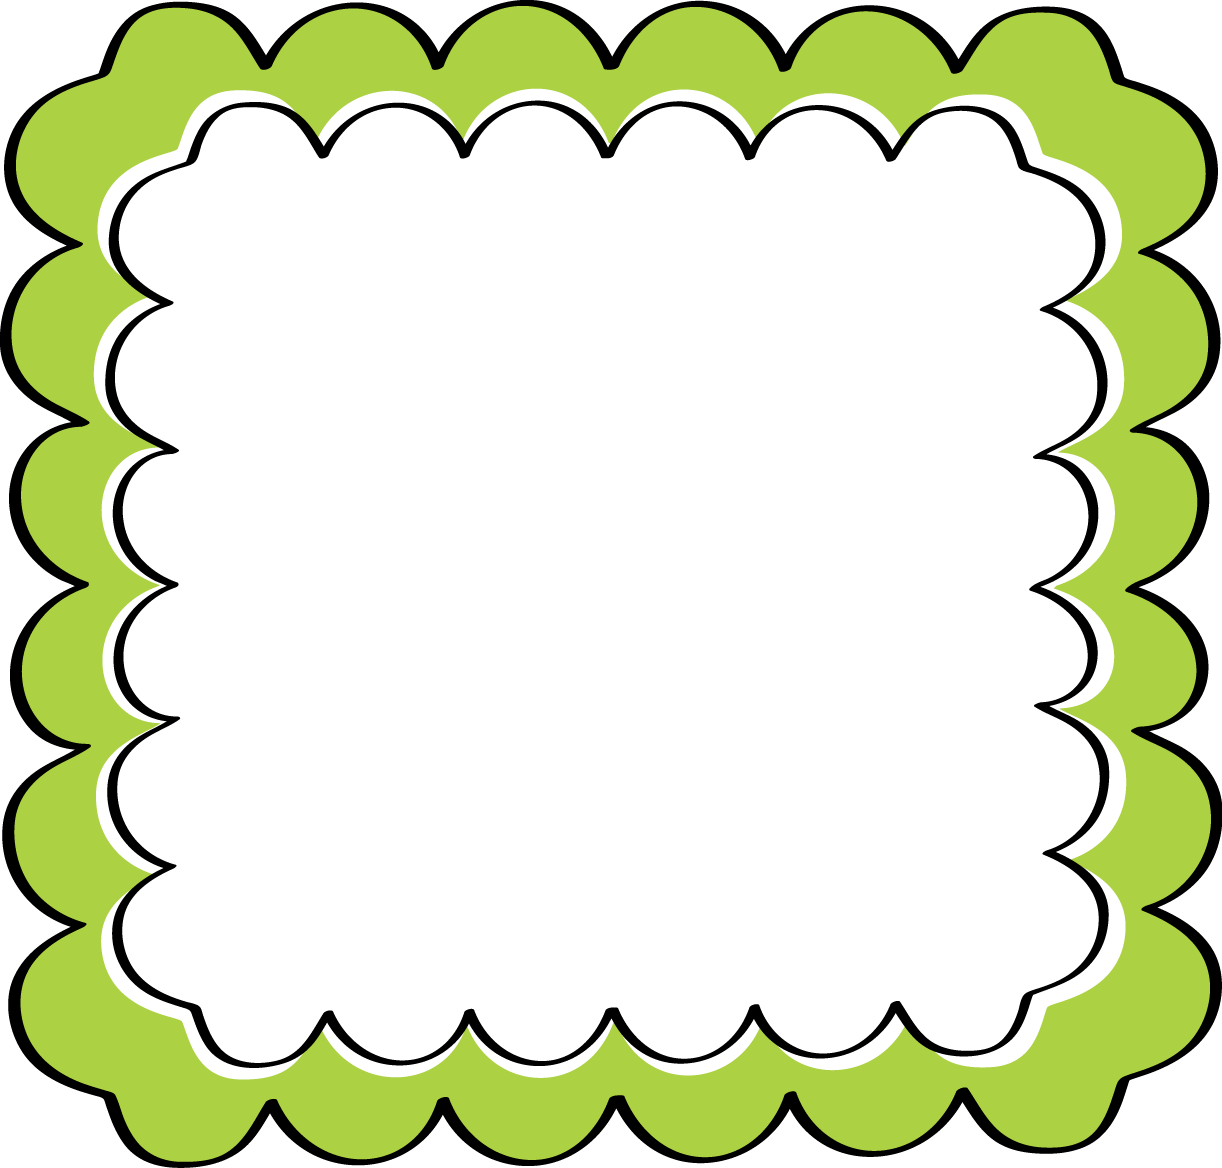 School theme green scalloped. Pray clipart border